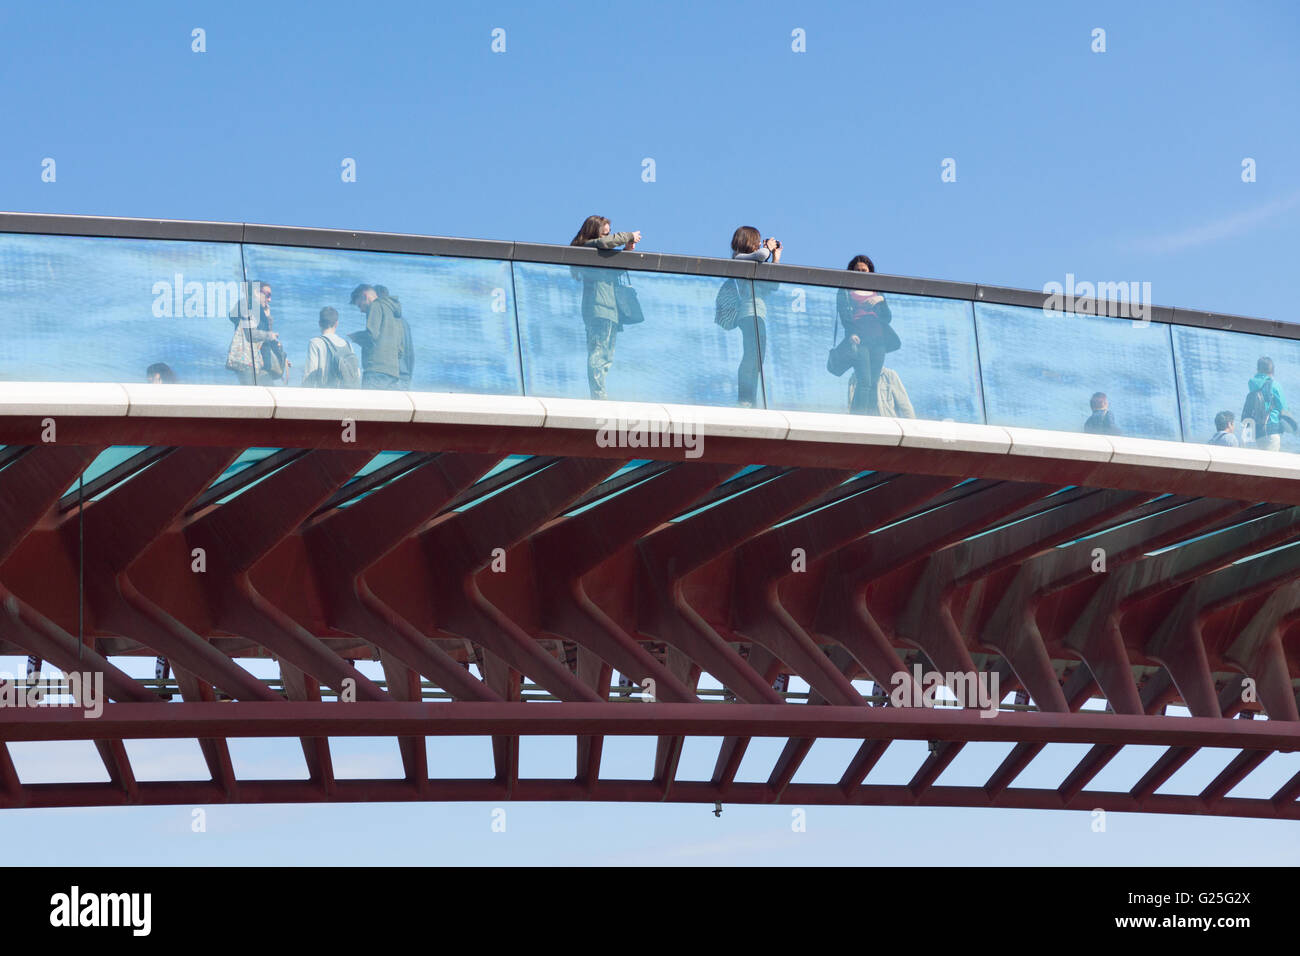 Pedestrians looking out at the view from the Constitution Bridge, Venice - Stock Image